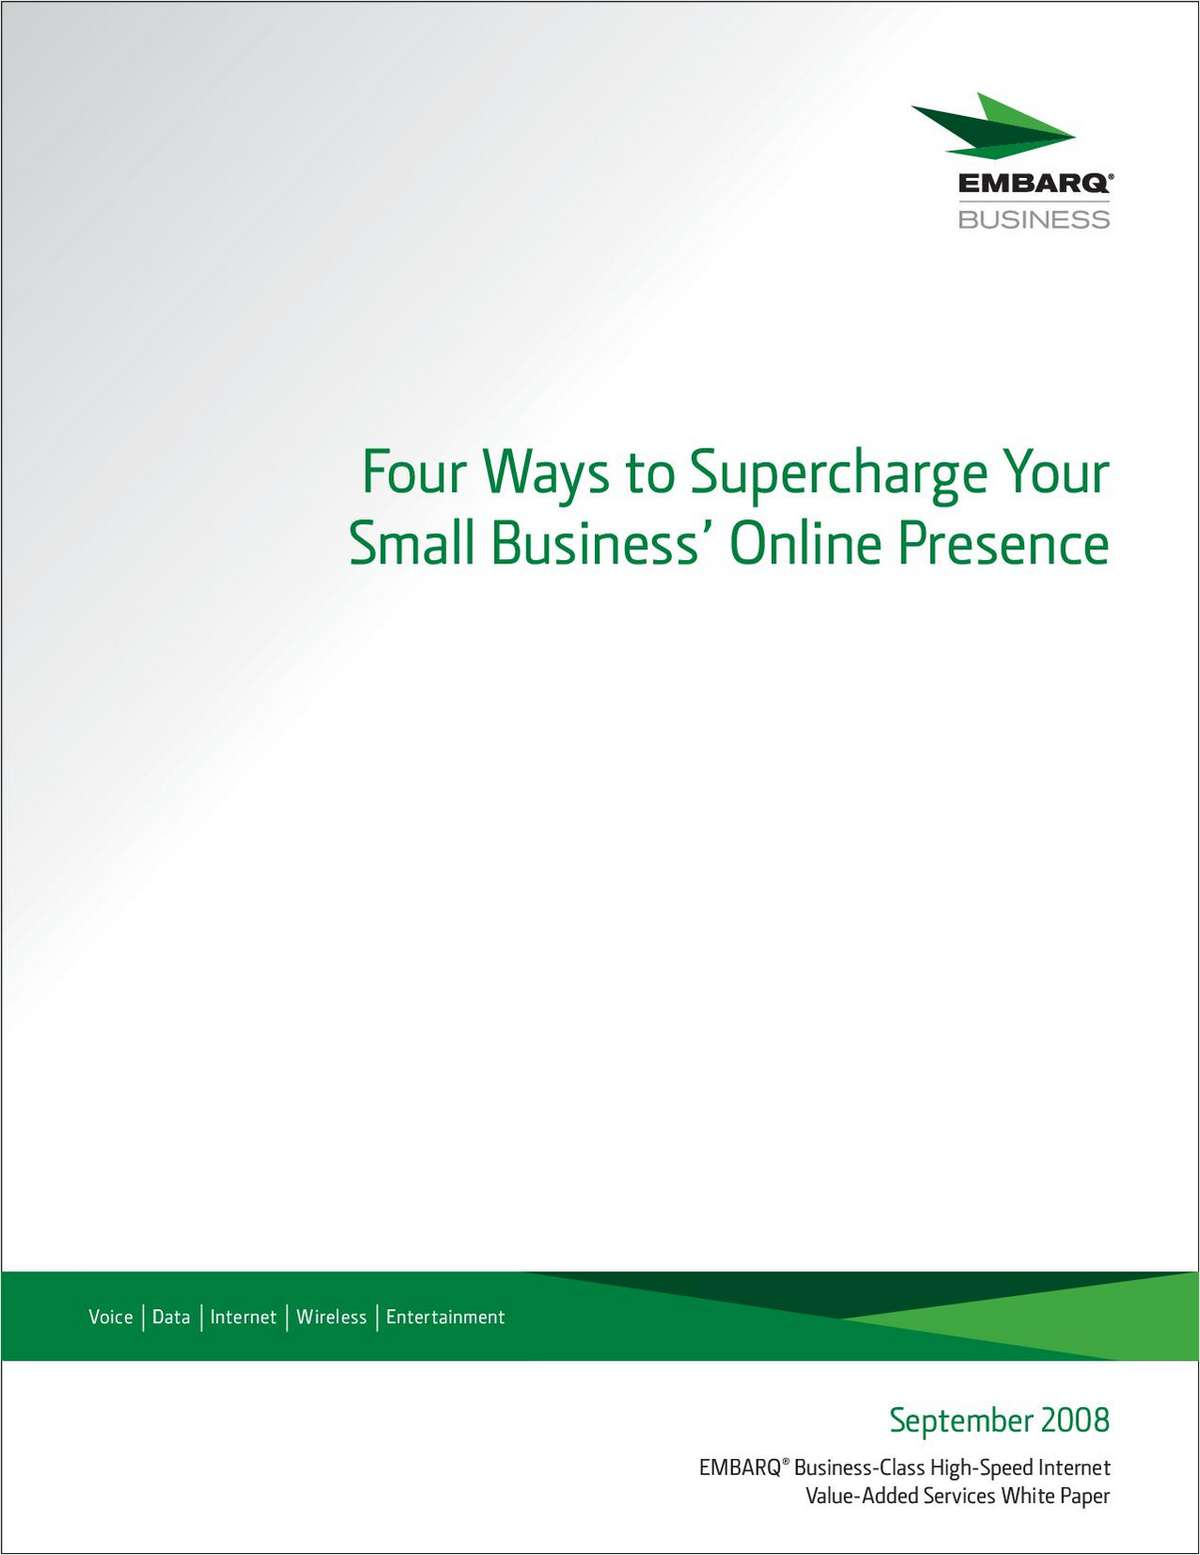 Four Ways to Supercharge Your Small Business' Online Presence